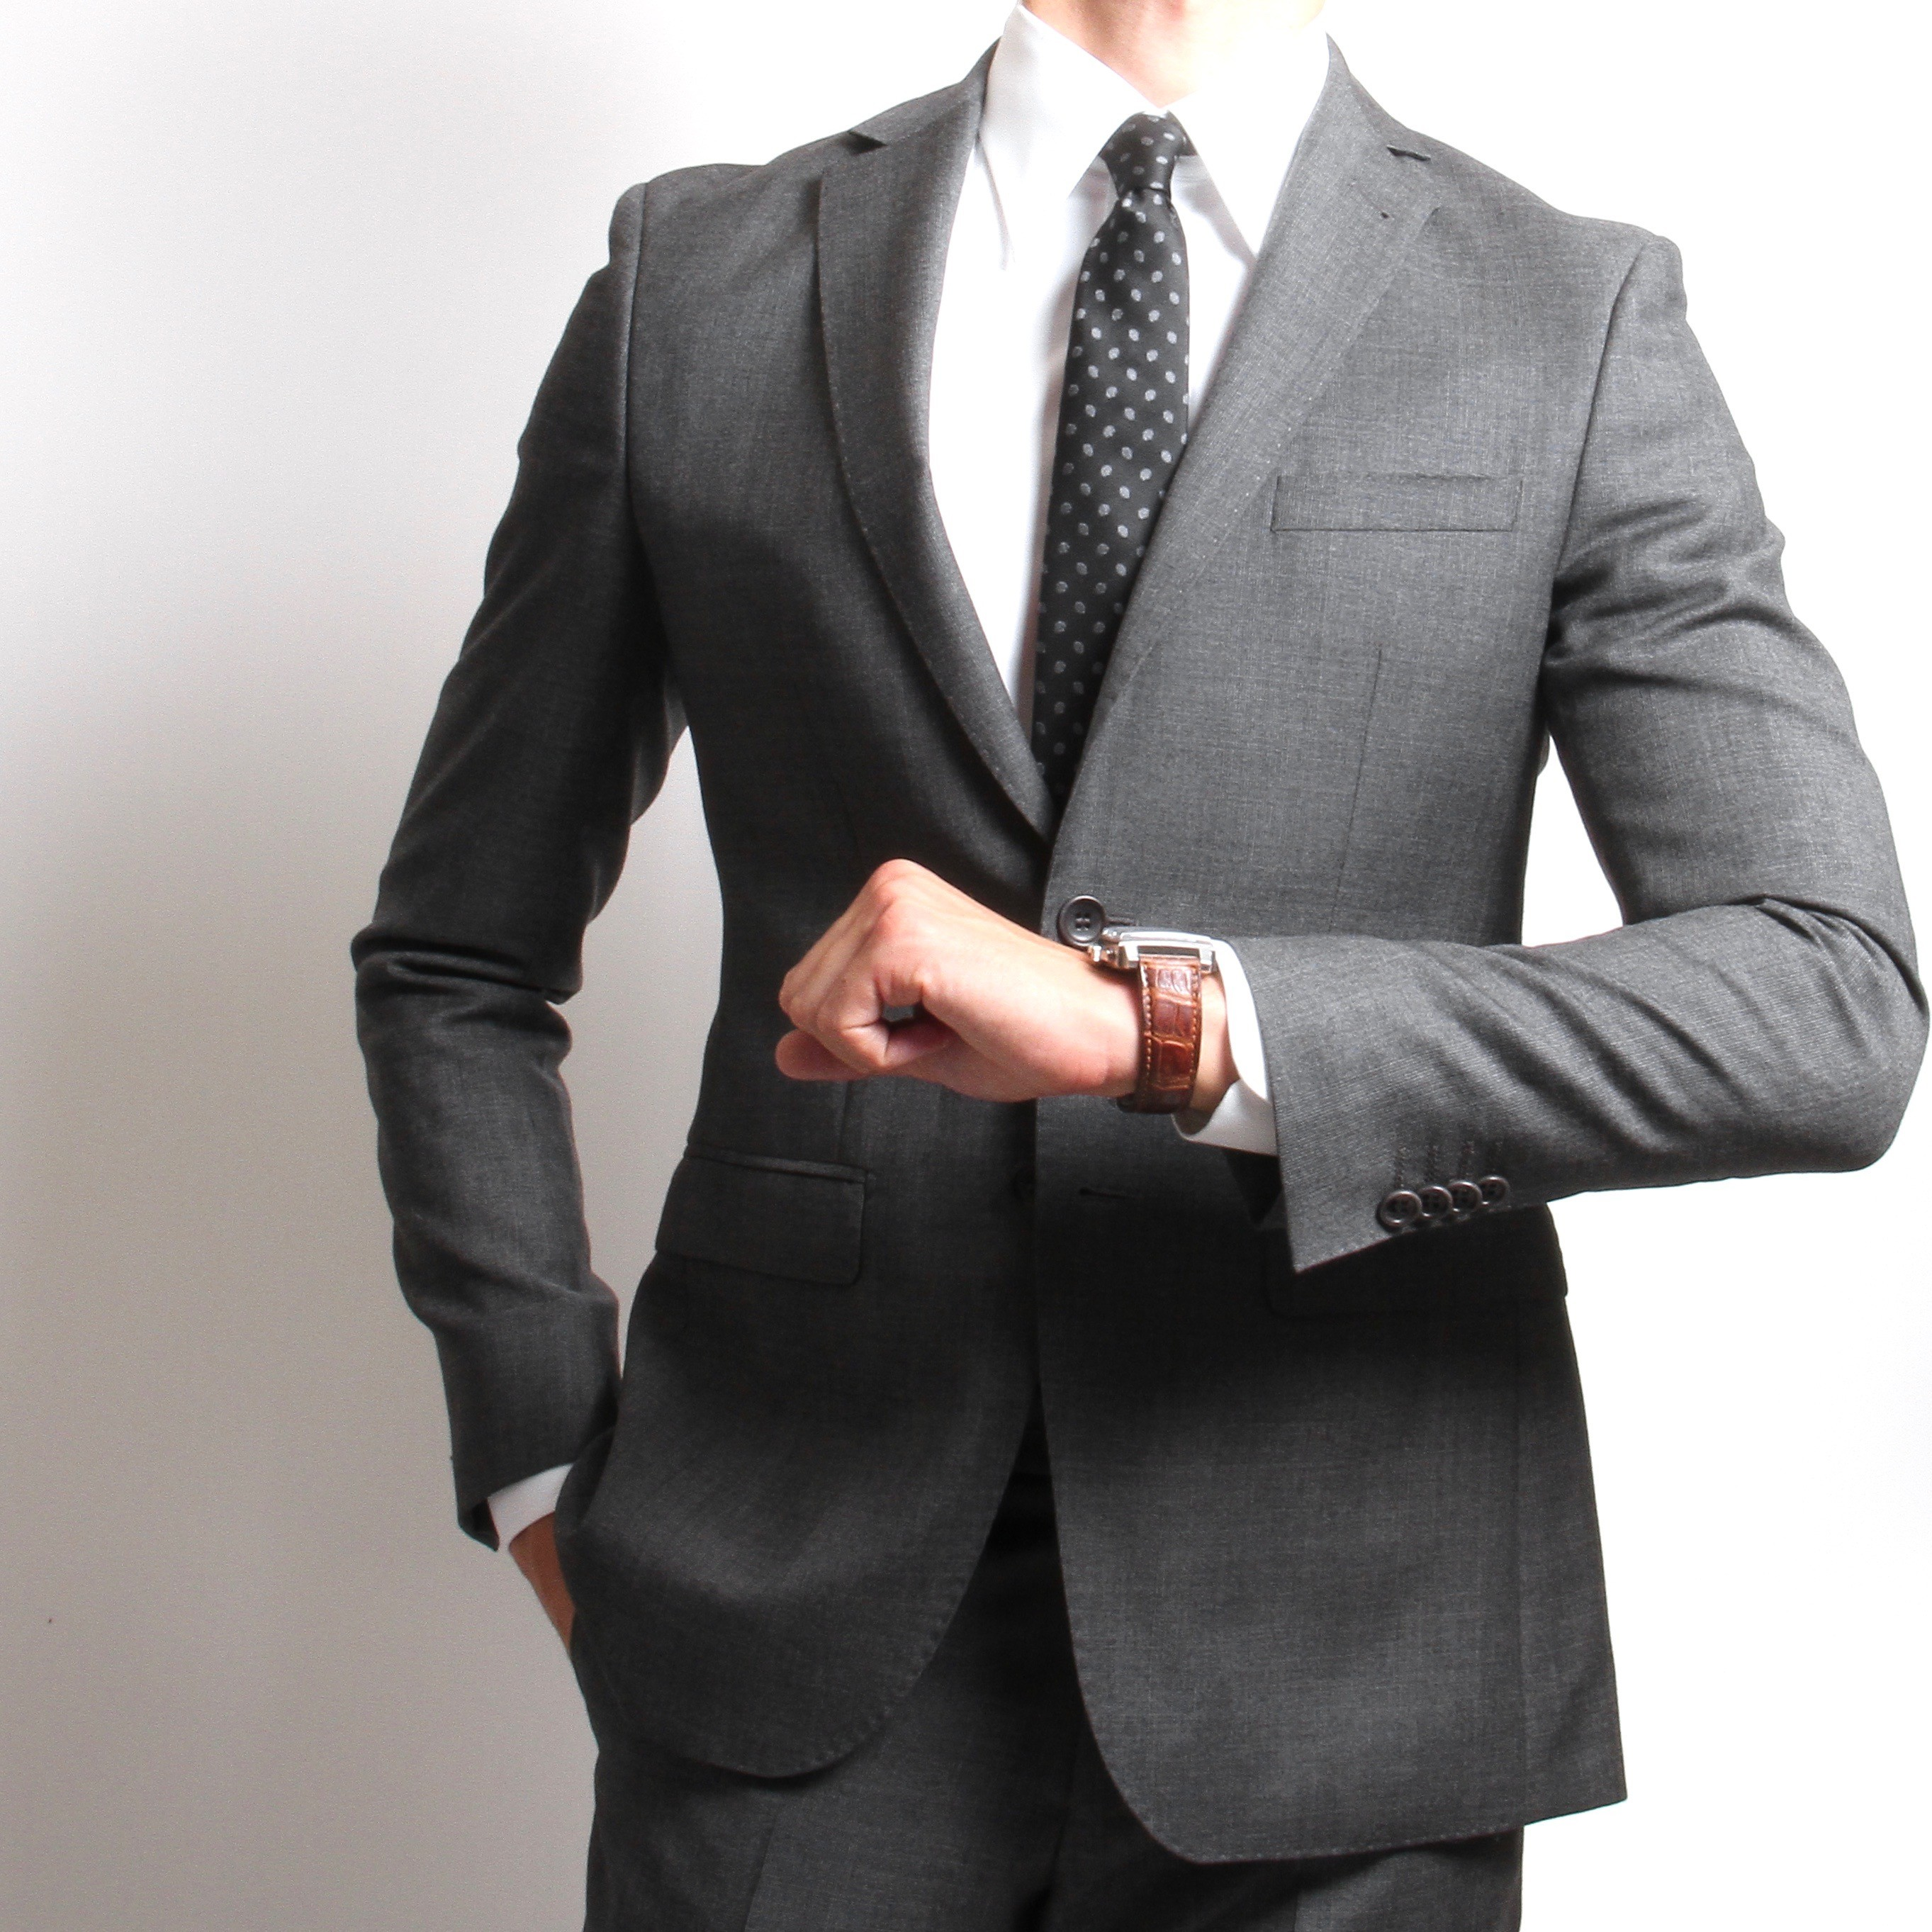 Costume Anthracite - Slim-Fit - Prince de Galles - Canonico 110's (Suits)